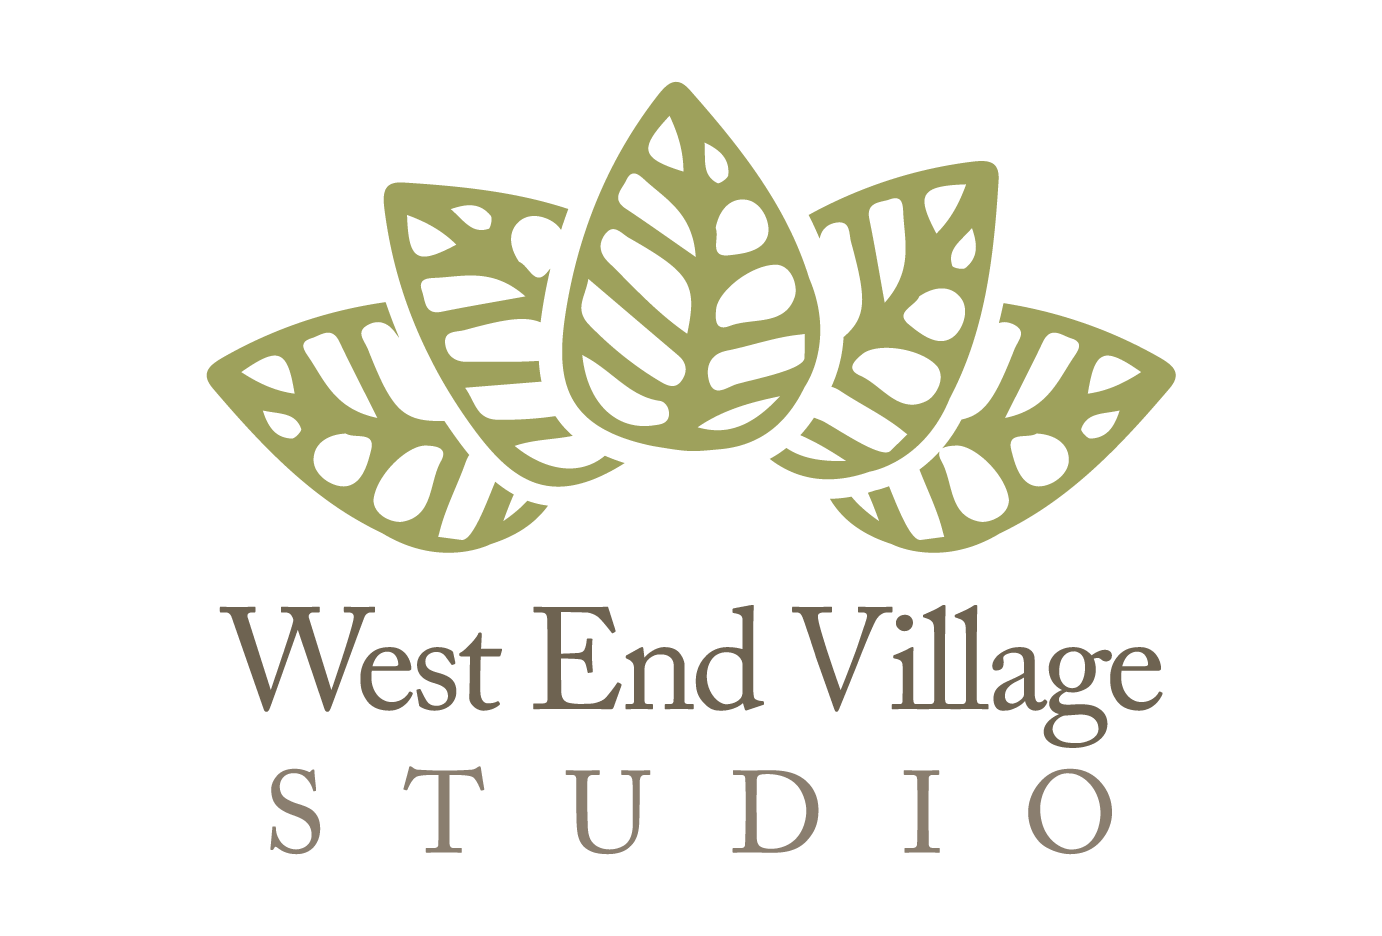 West End Village Studio